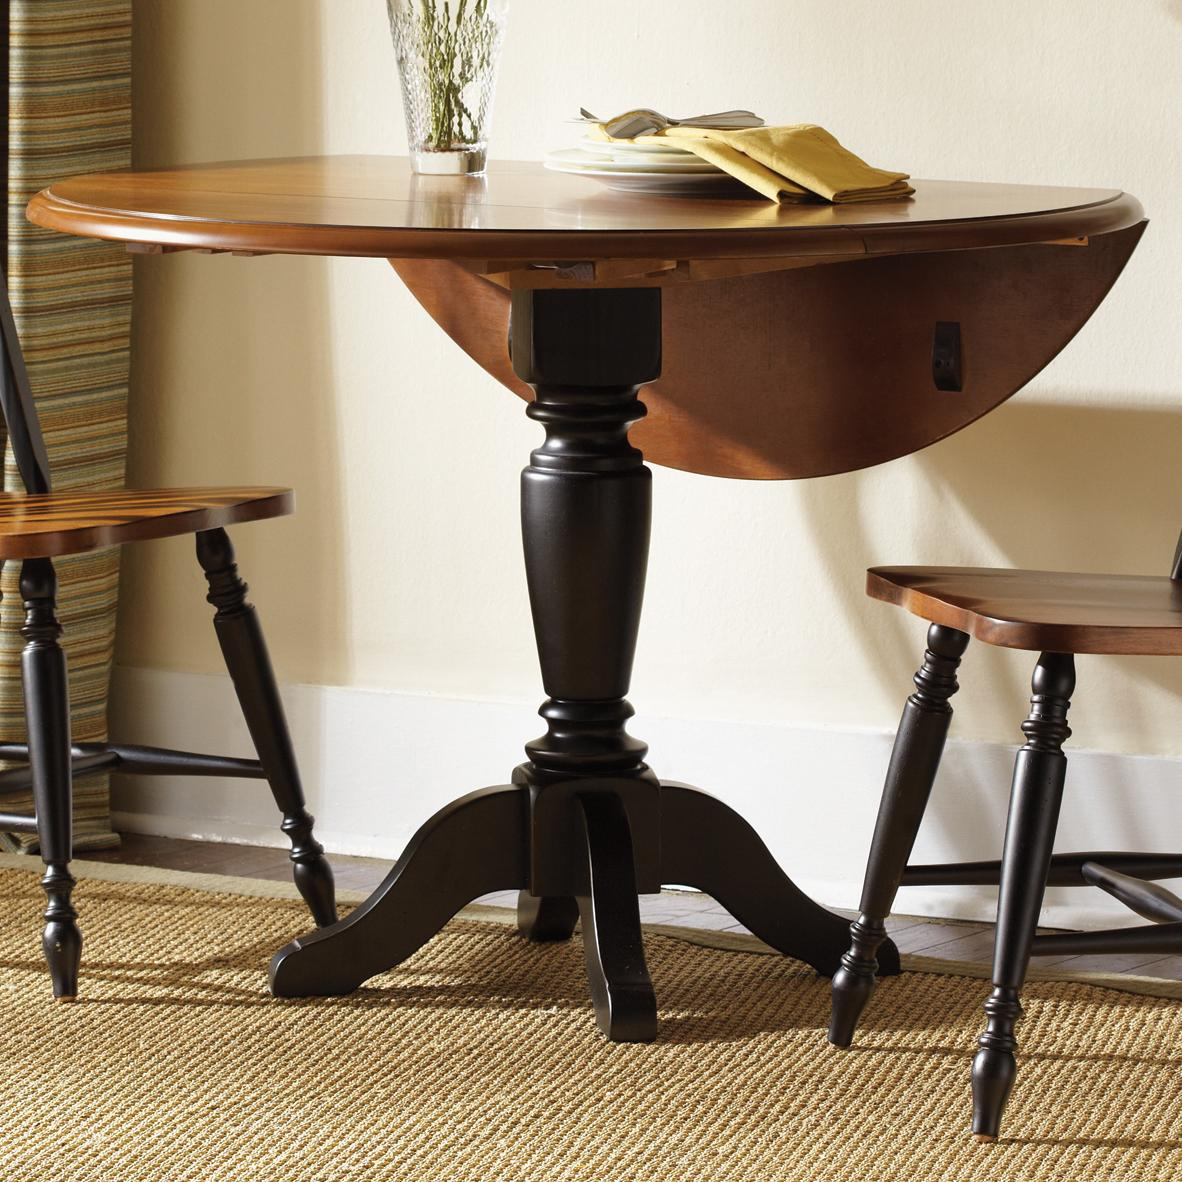 Image of: drop leaf round table